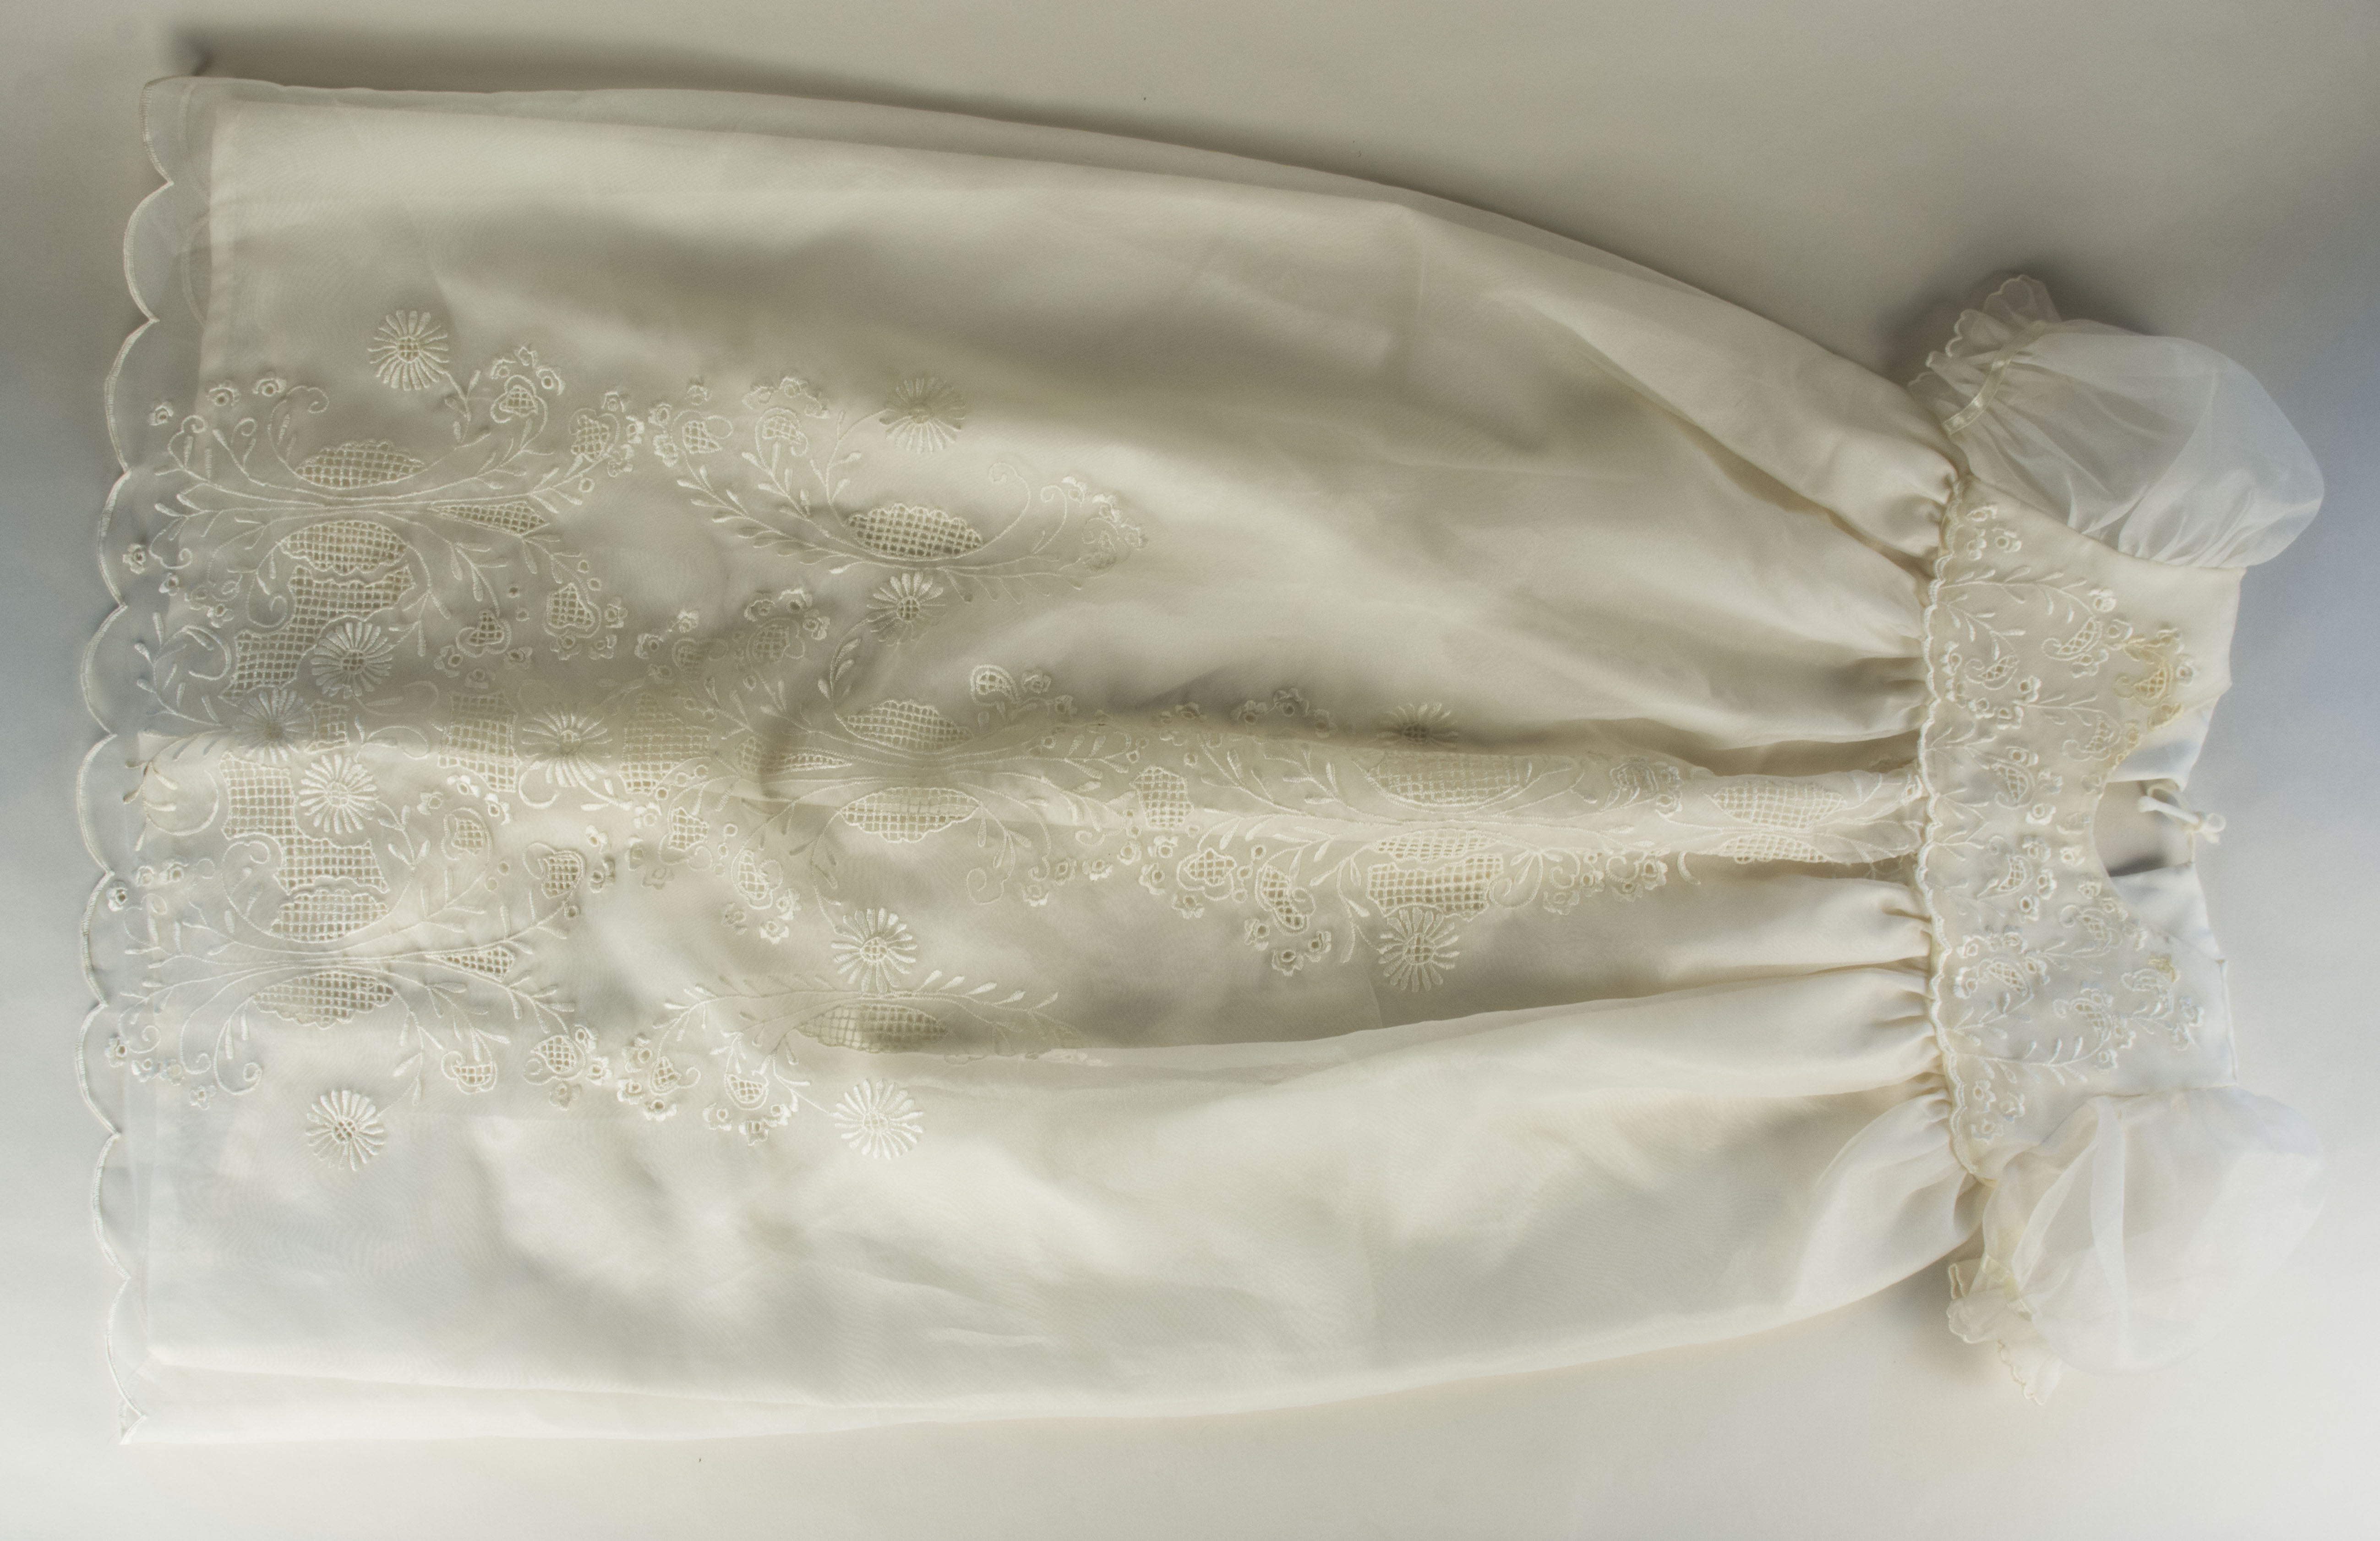 Baptism gown owned by Claudia Jamilla- front view Daughter's baptismal gown from 1997. Claudia  noted that this was probably made in southern Luzon. It was a gift from mother-in-law [the mother of Claudia's husband; Stephanie's grandfather. Symbolizes daughter's [Stephanie's] birth.   Any views, findings, conclusions, or recommendations expressed in this story do not necessarily represent those of the National Endowment for the Humanities. [Copyright] Field Museum of Natural History - CC BY-NC